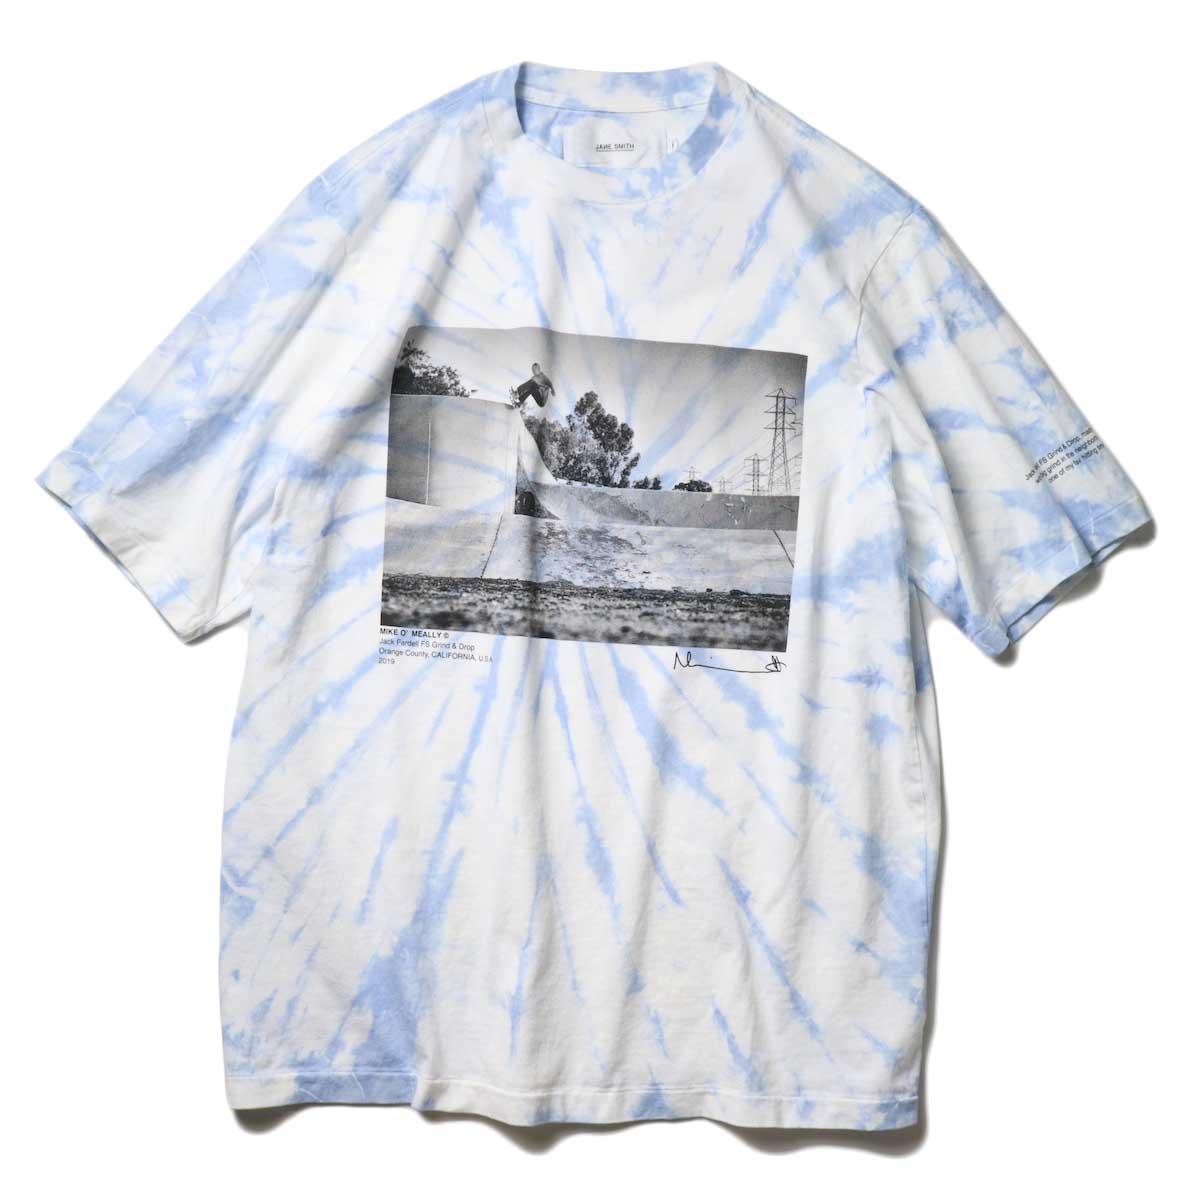 JANE SMITH / JACK FARDELL GRIND & DROP S/S T-SHIRT (Sax)